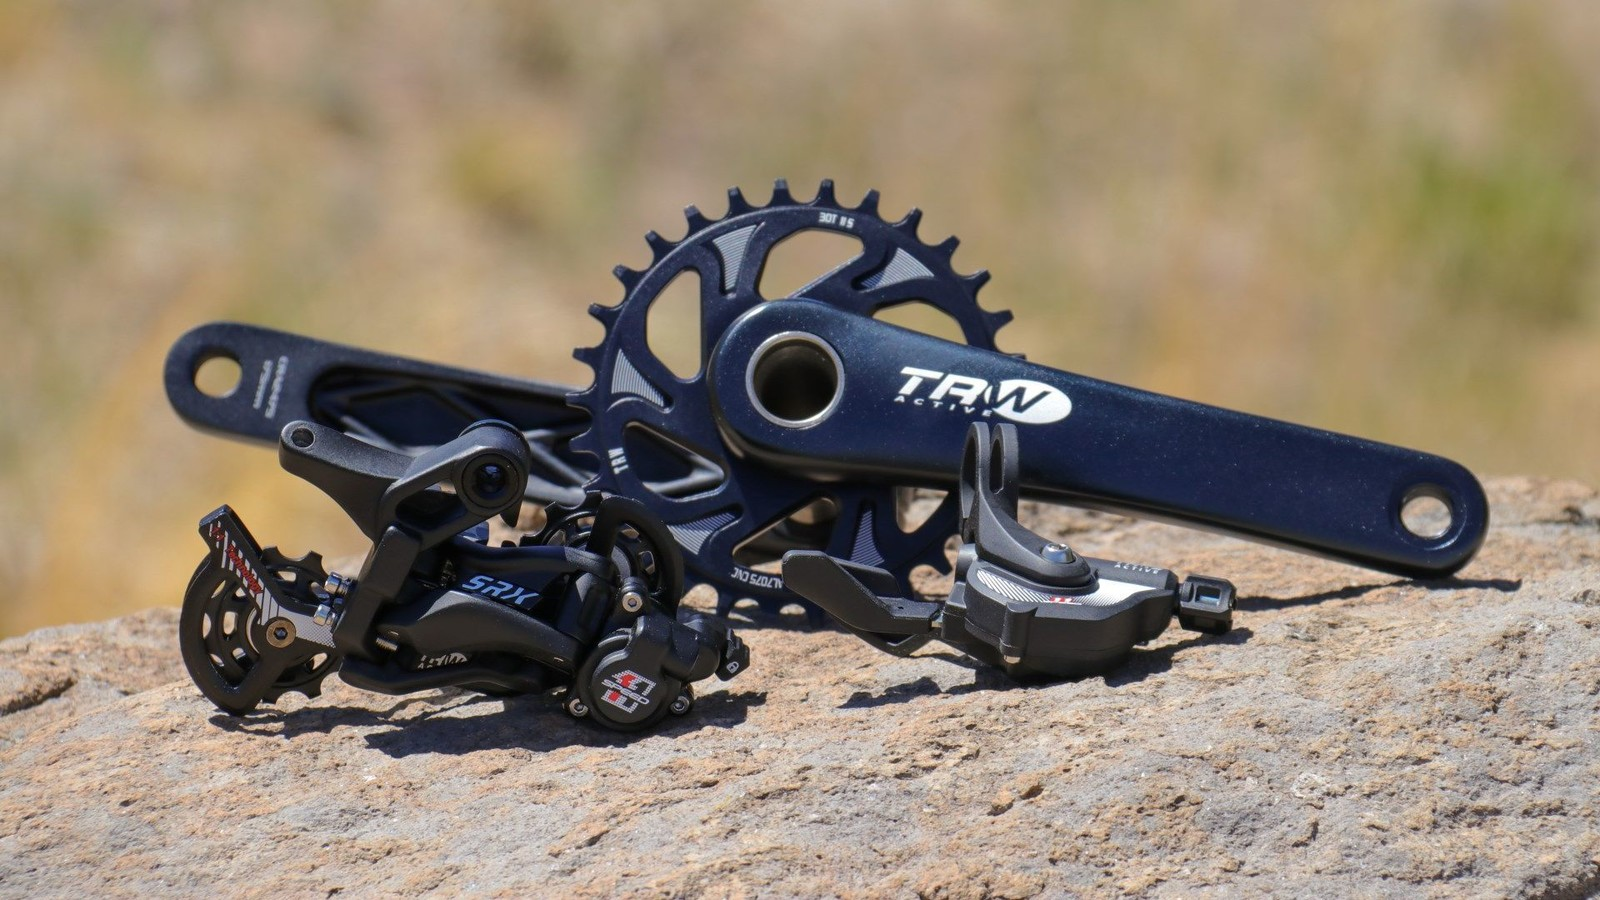 TRW Active Enters the Mountain Bike Drivetrain Market